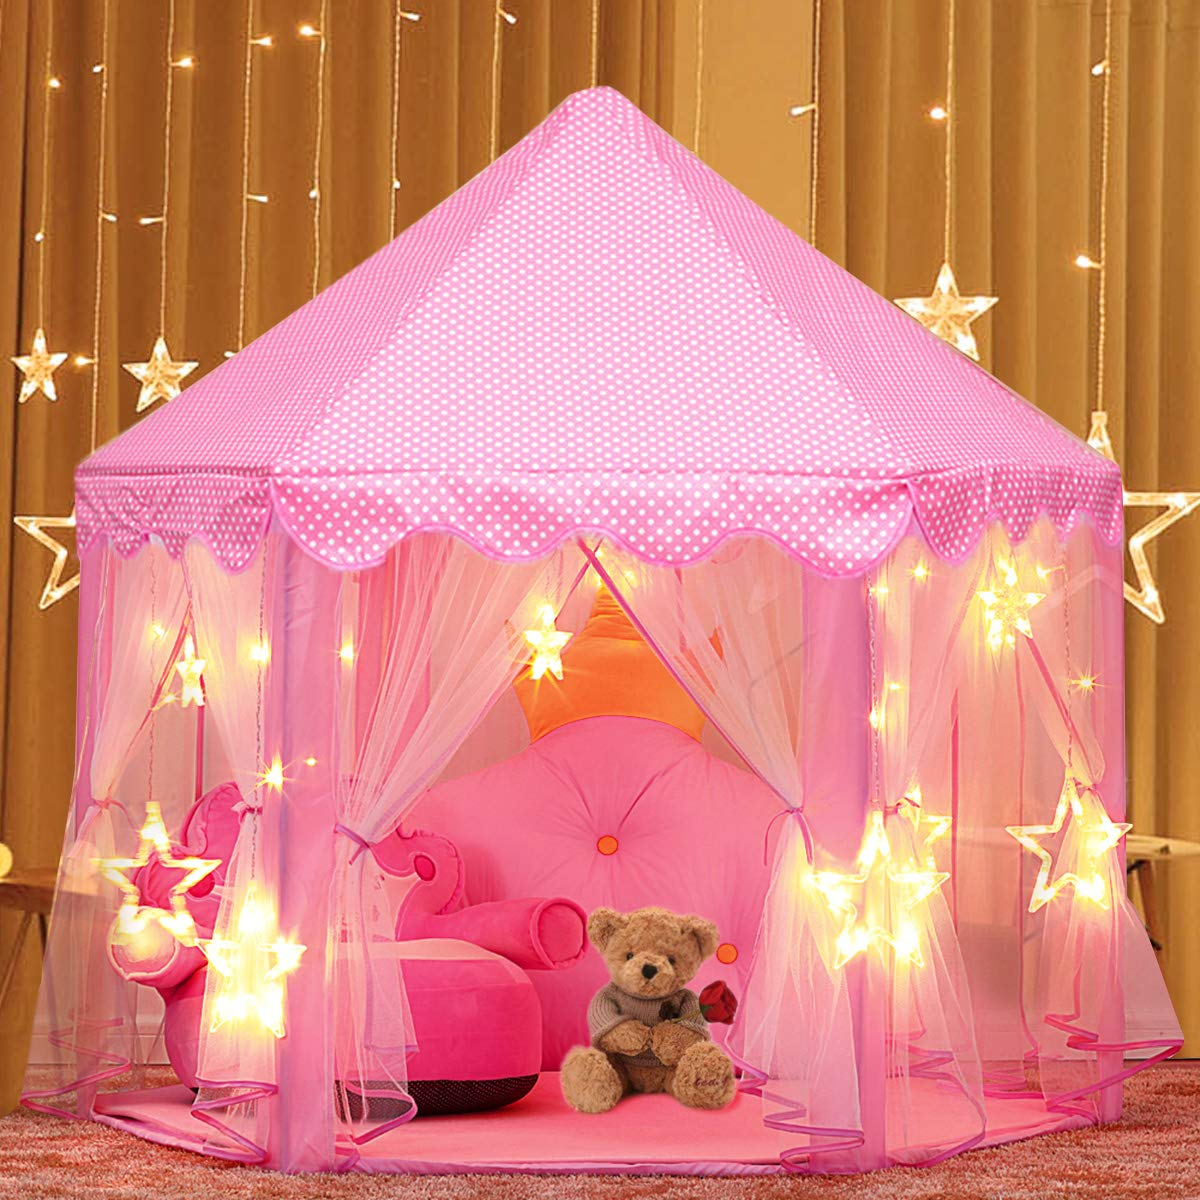 Play Tent, Estela Pink Hexagon Princess Castle House Palace Tents Kids Castle Playhouse with Star Lights for Indoor and Outdoor, Great Gift for Girls, 53'' x 55'' (DxH) Estela Store